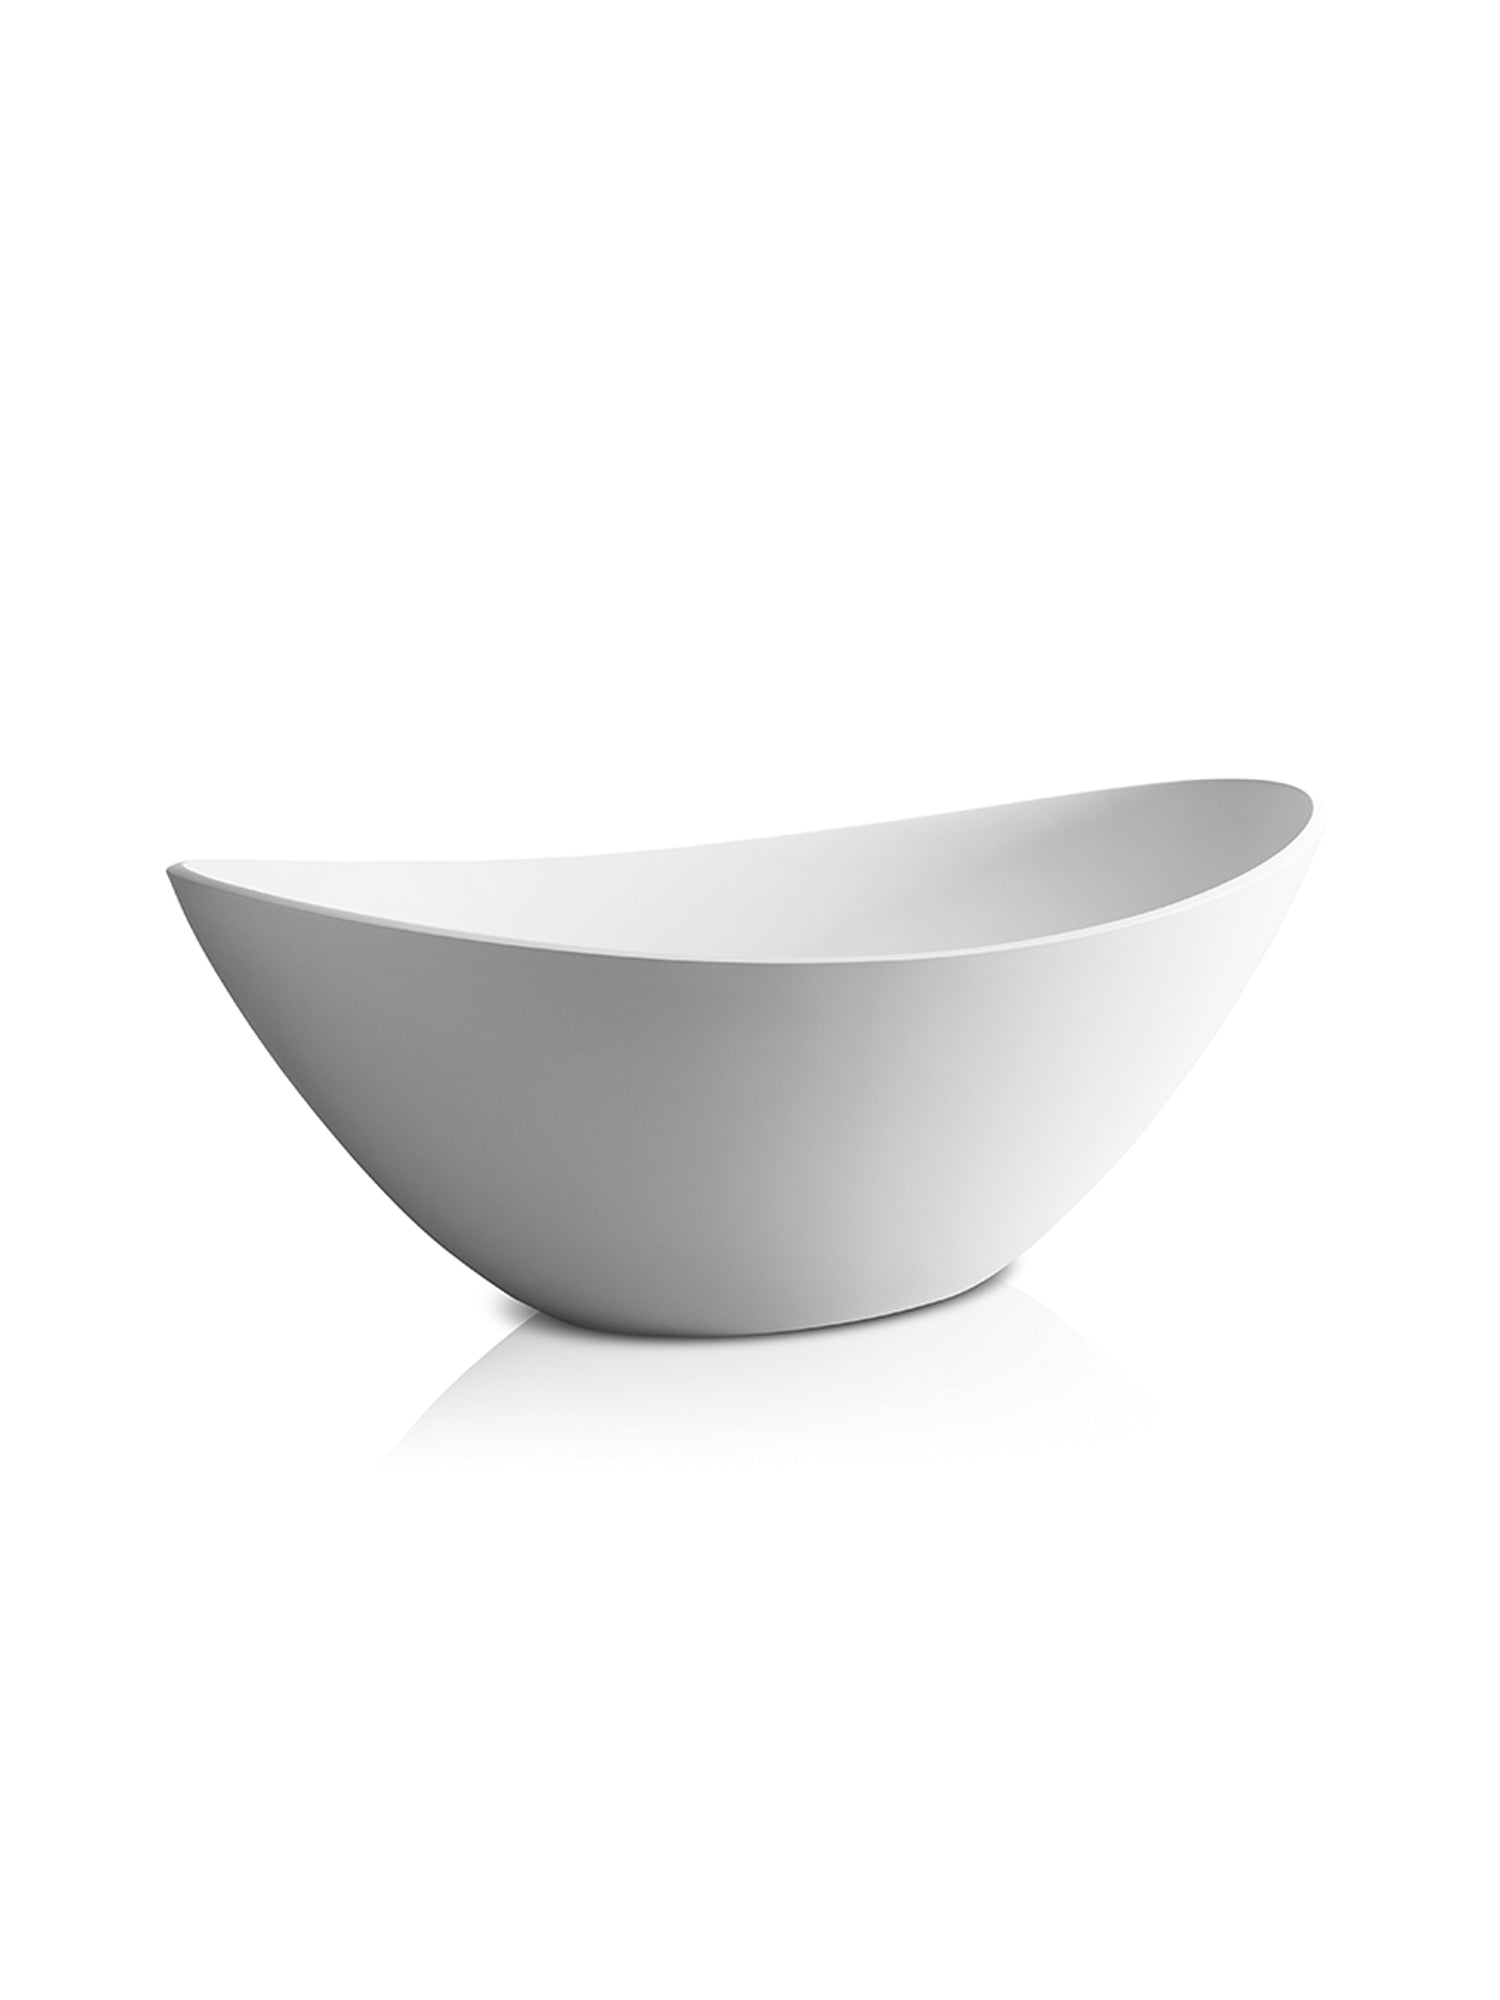 Rio Freestanding Bathtub #SBM066